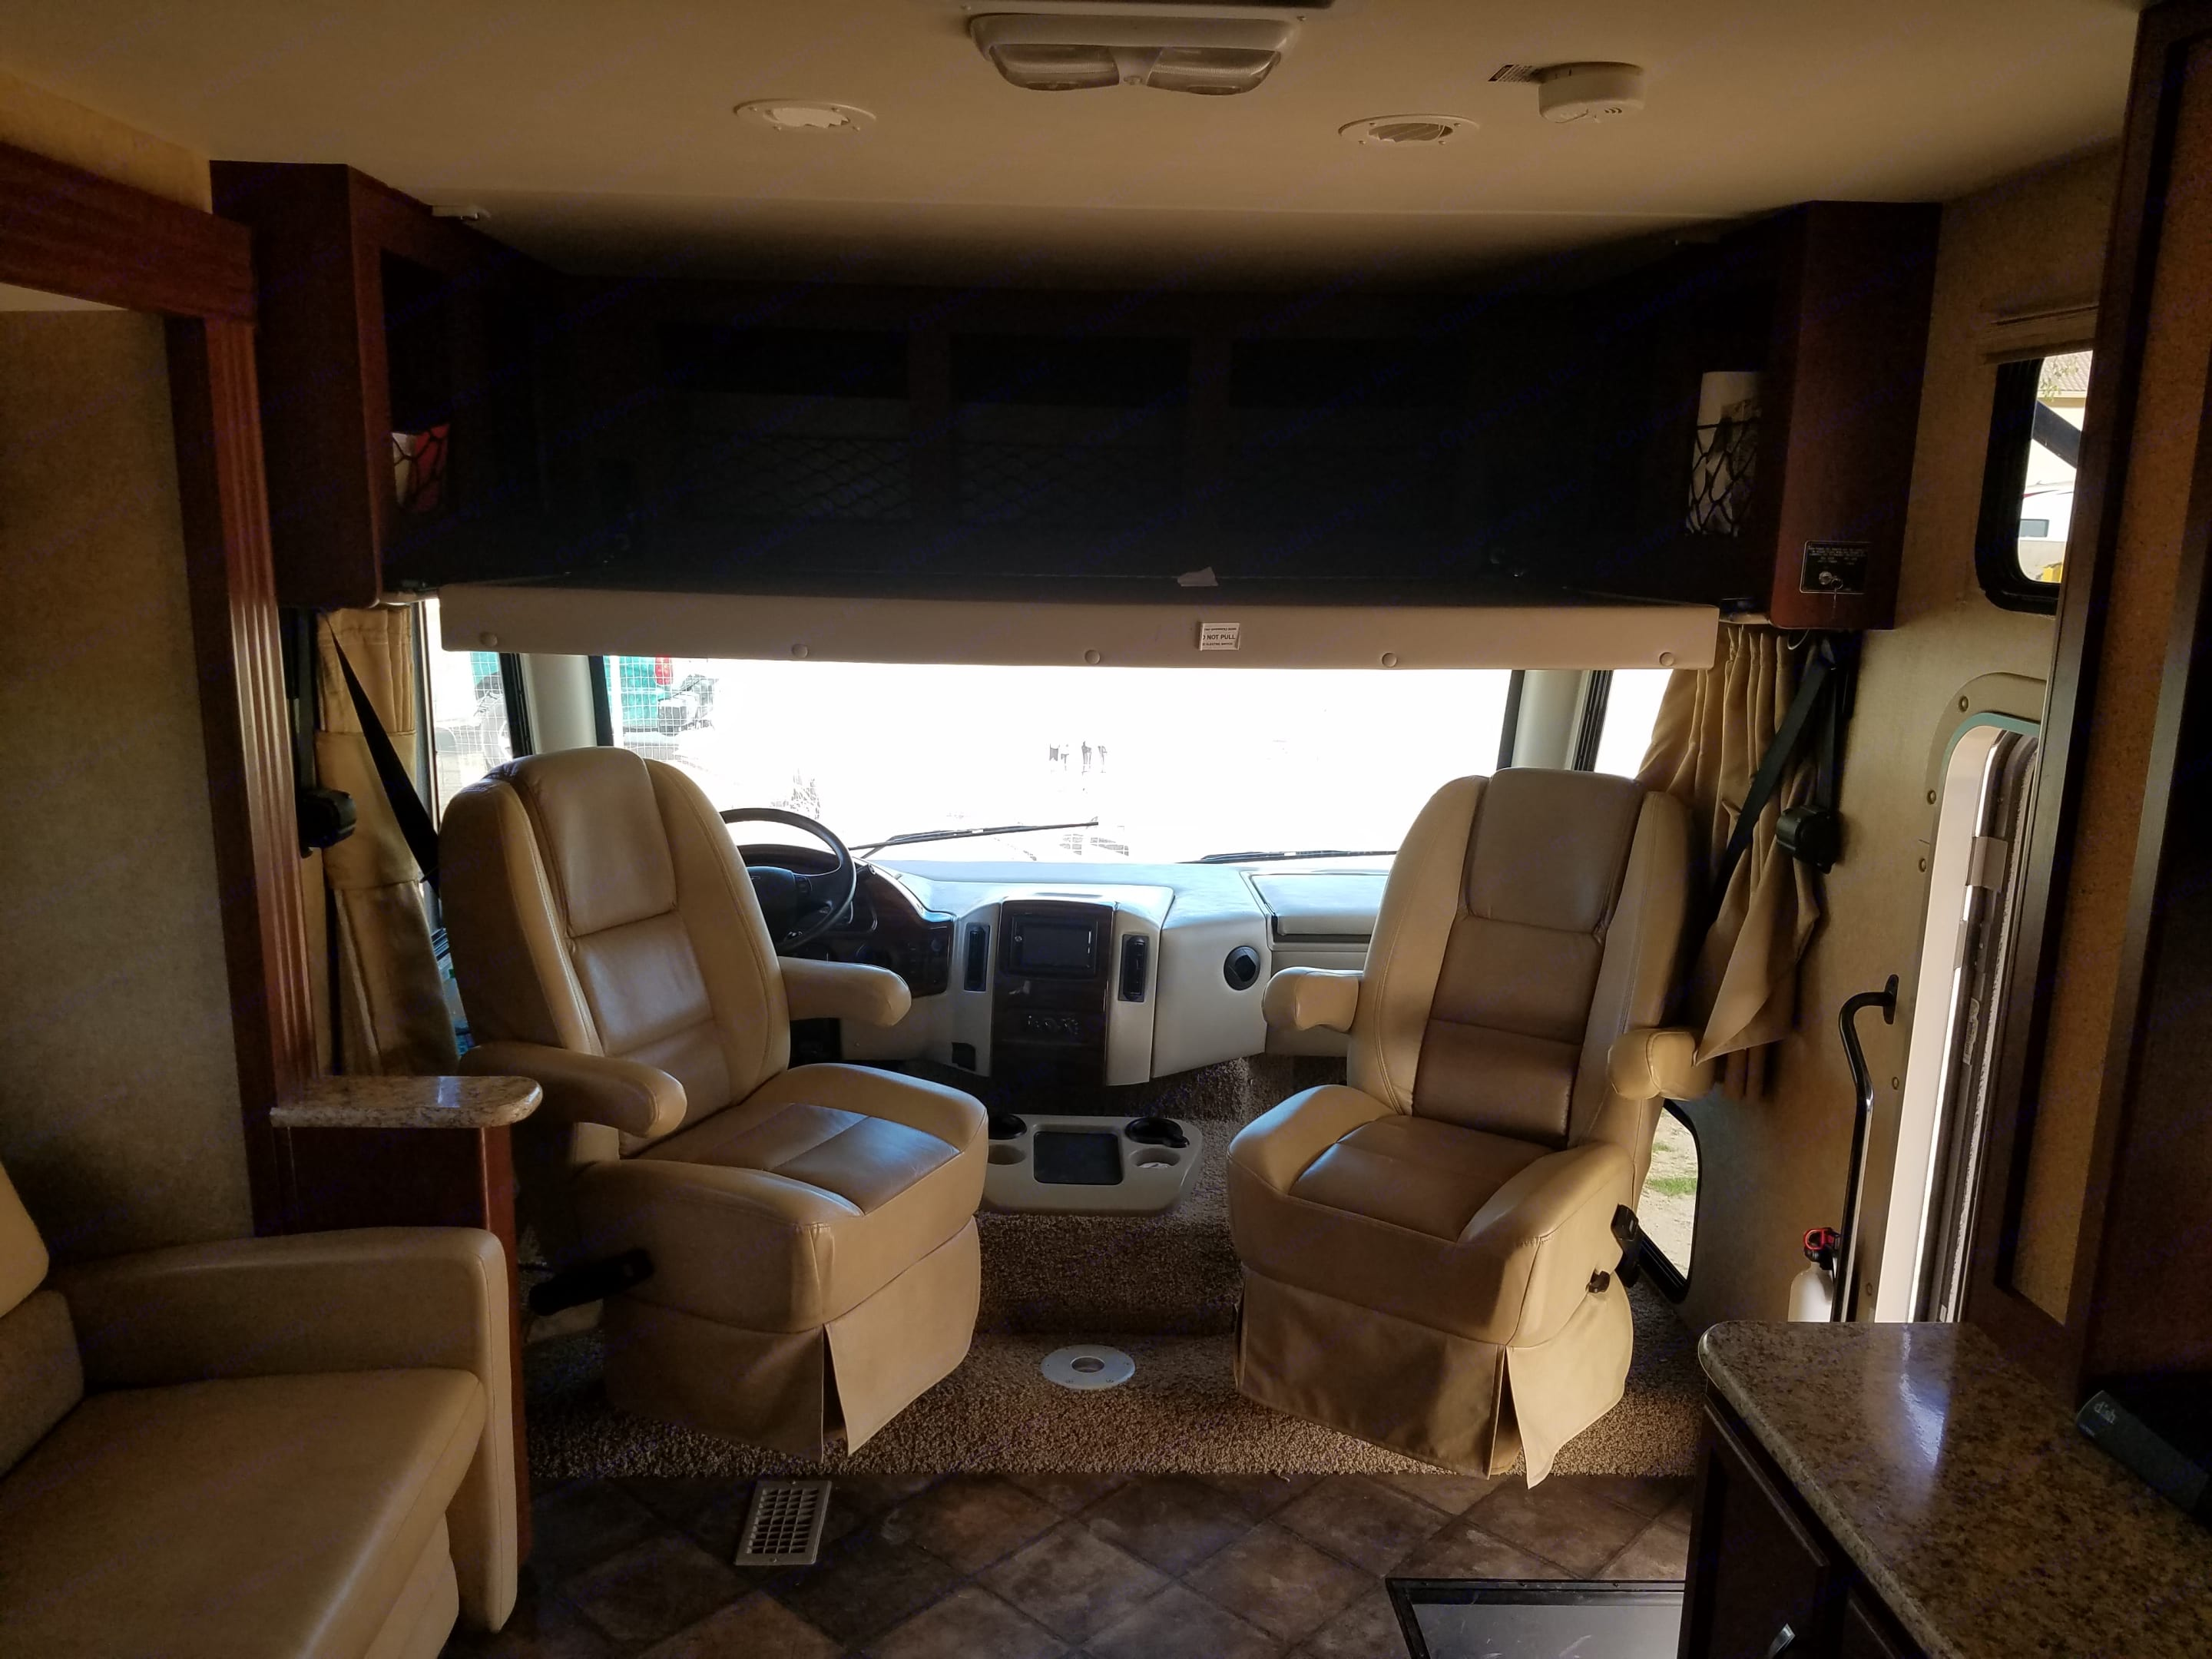 Drive and passenger seats swivel for additional common area seating. A full-size bed also folds down above the seats.. Thor Motor Coach A.C.E 2014